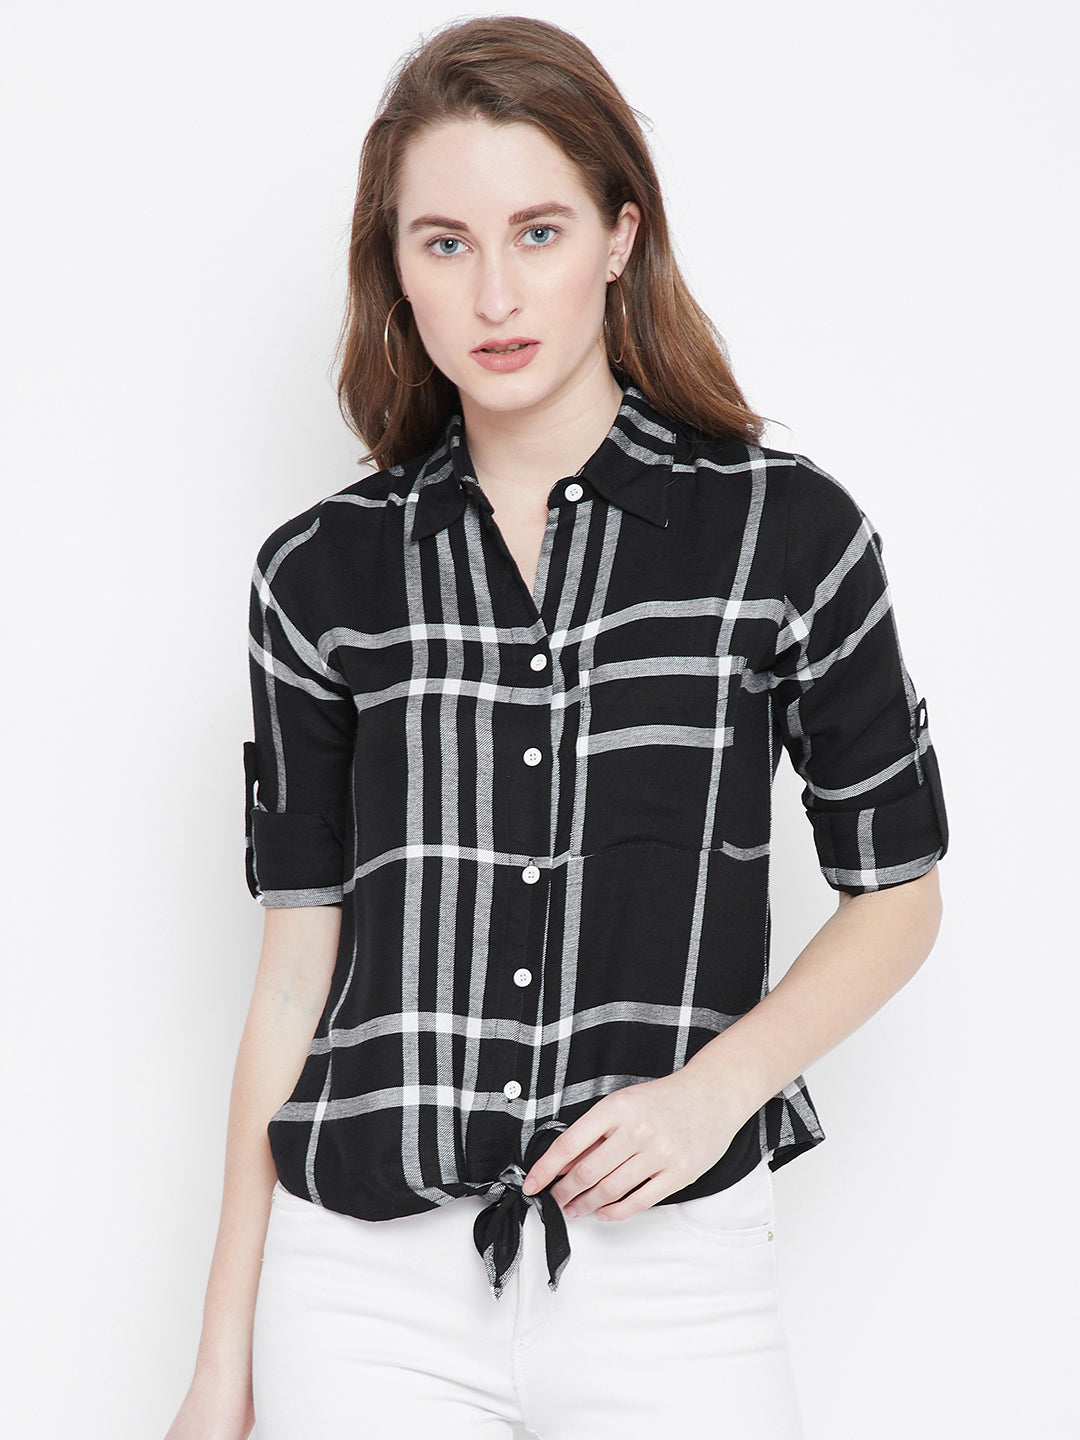 Black Checked Shirt Style Top